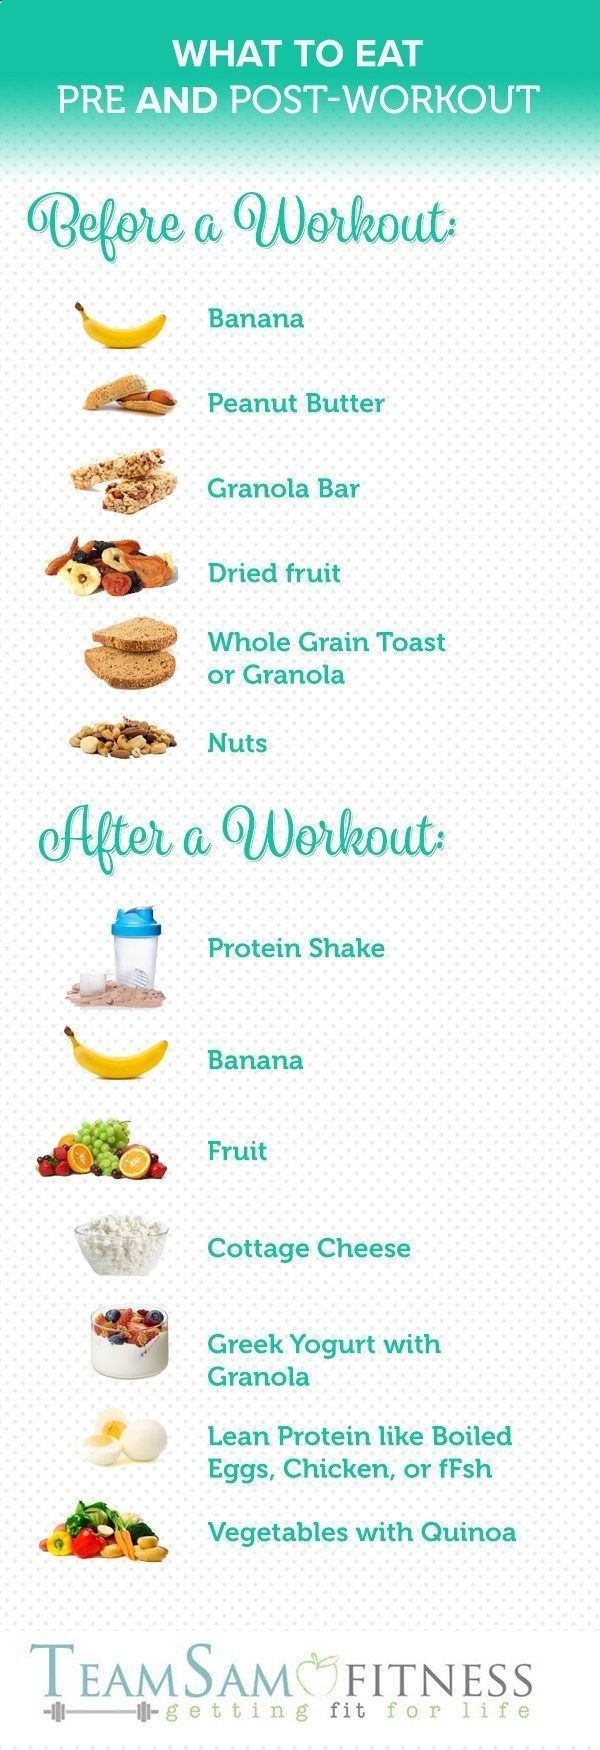 Diet Eat Stop Eat - Eat Stop Eat To Loss Weight - Tips For Easy and Successful Weight Loss Witness How These Loses 29 Pounds In 2 Weeks - In Just One Day This Simple Strategy Frees You From Complicated Diet Rules - And Eliminates Rebound Weight Gain In Just One Day This Simple Strategy Frees You From Complicated Diet Rules - And Eliminates Rebound Weight Gain